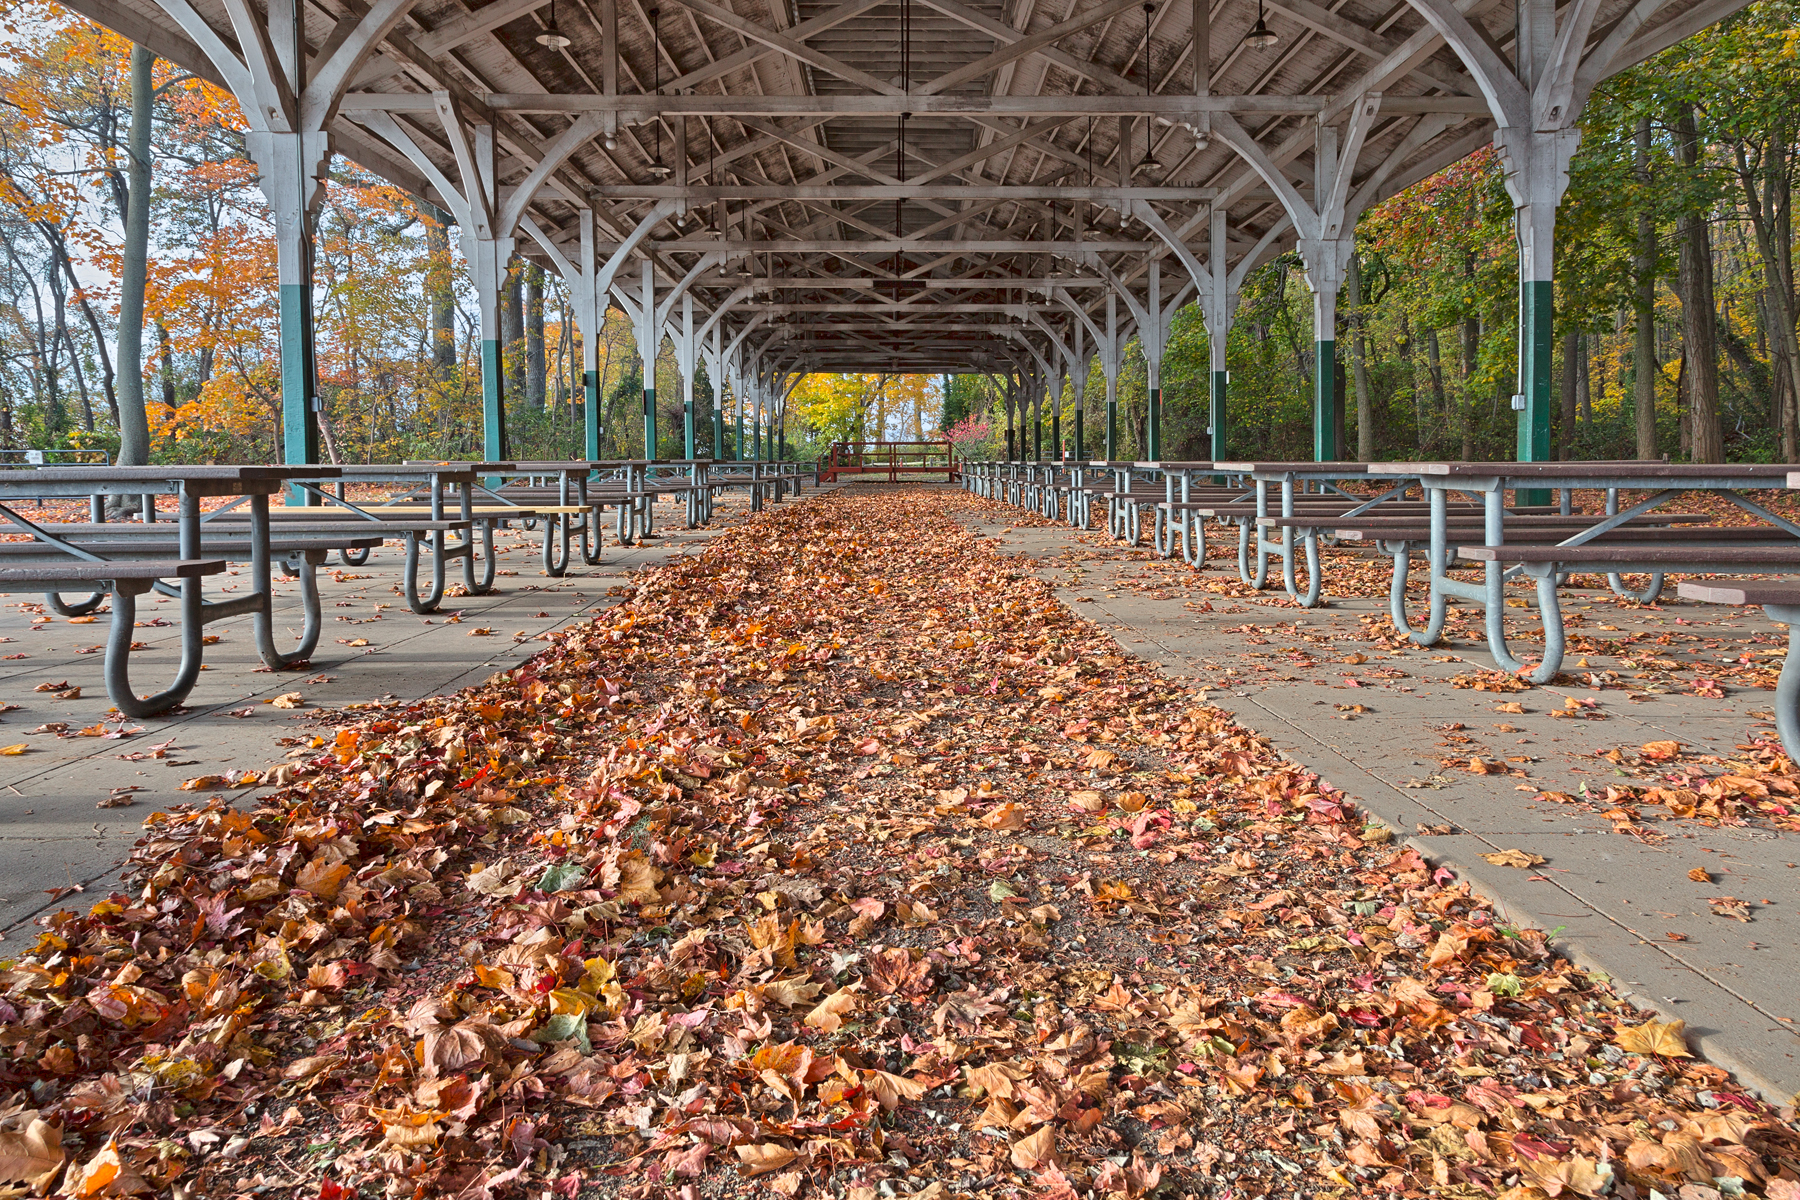 North Point Trolley Pavilion - HDR, Aisle, Passageway, Scenery, Scene, HQ Photo